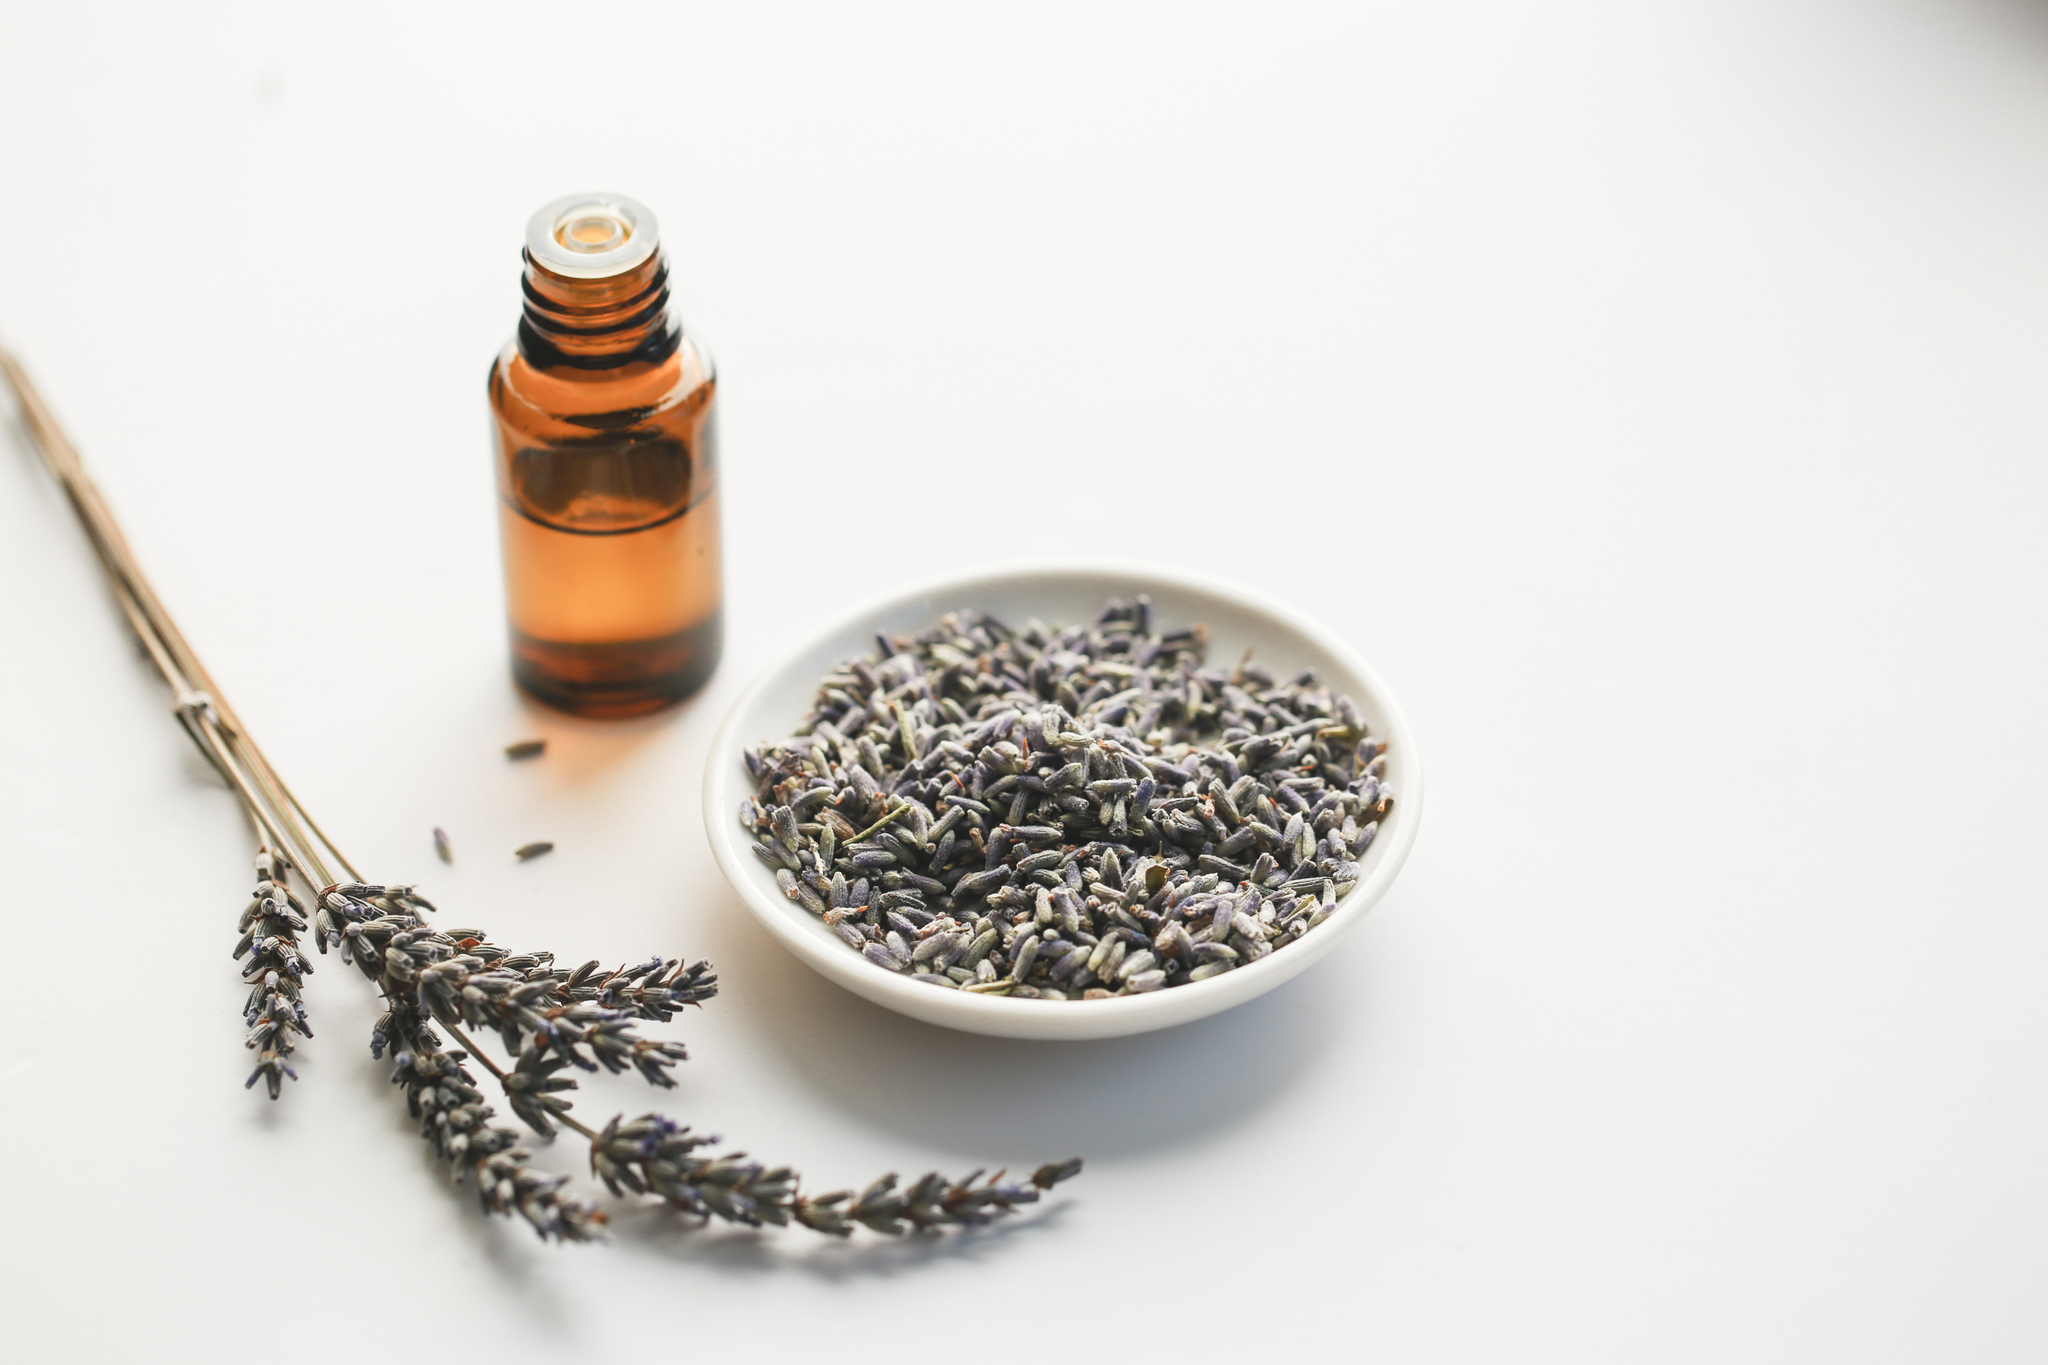 Essential oils to boost wellness